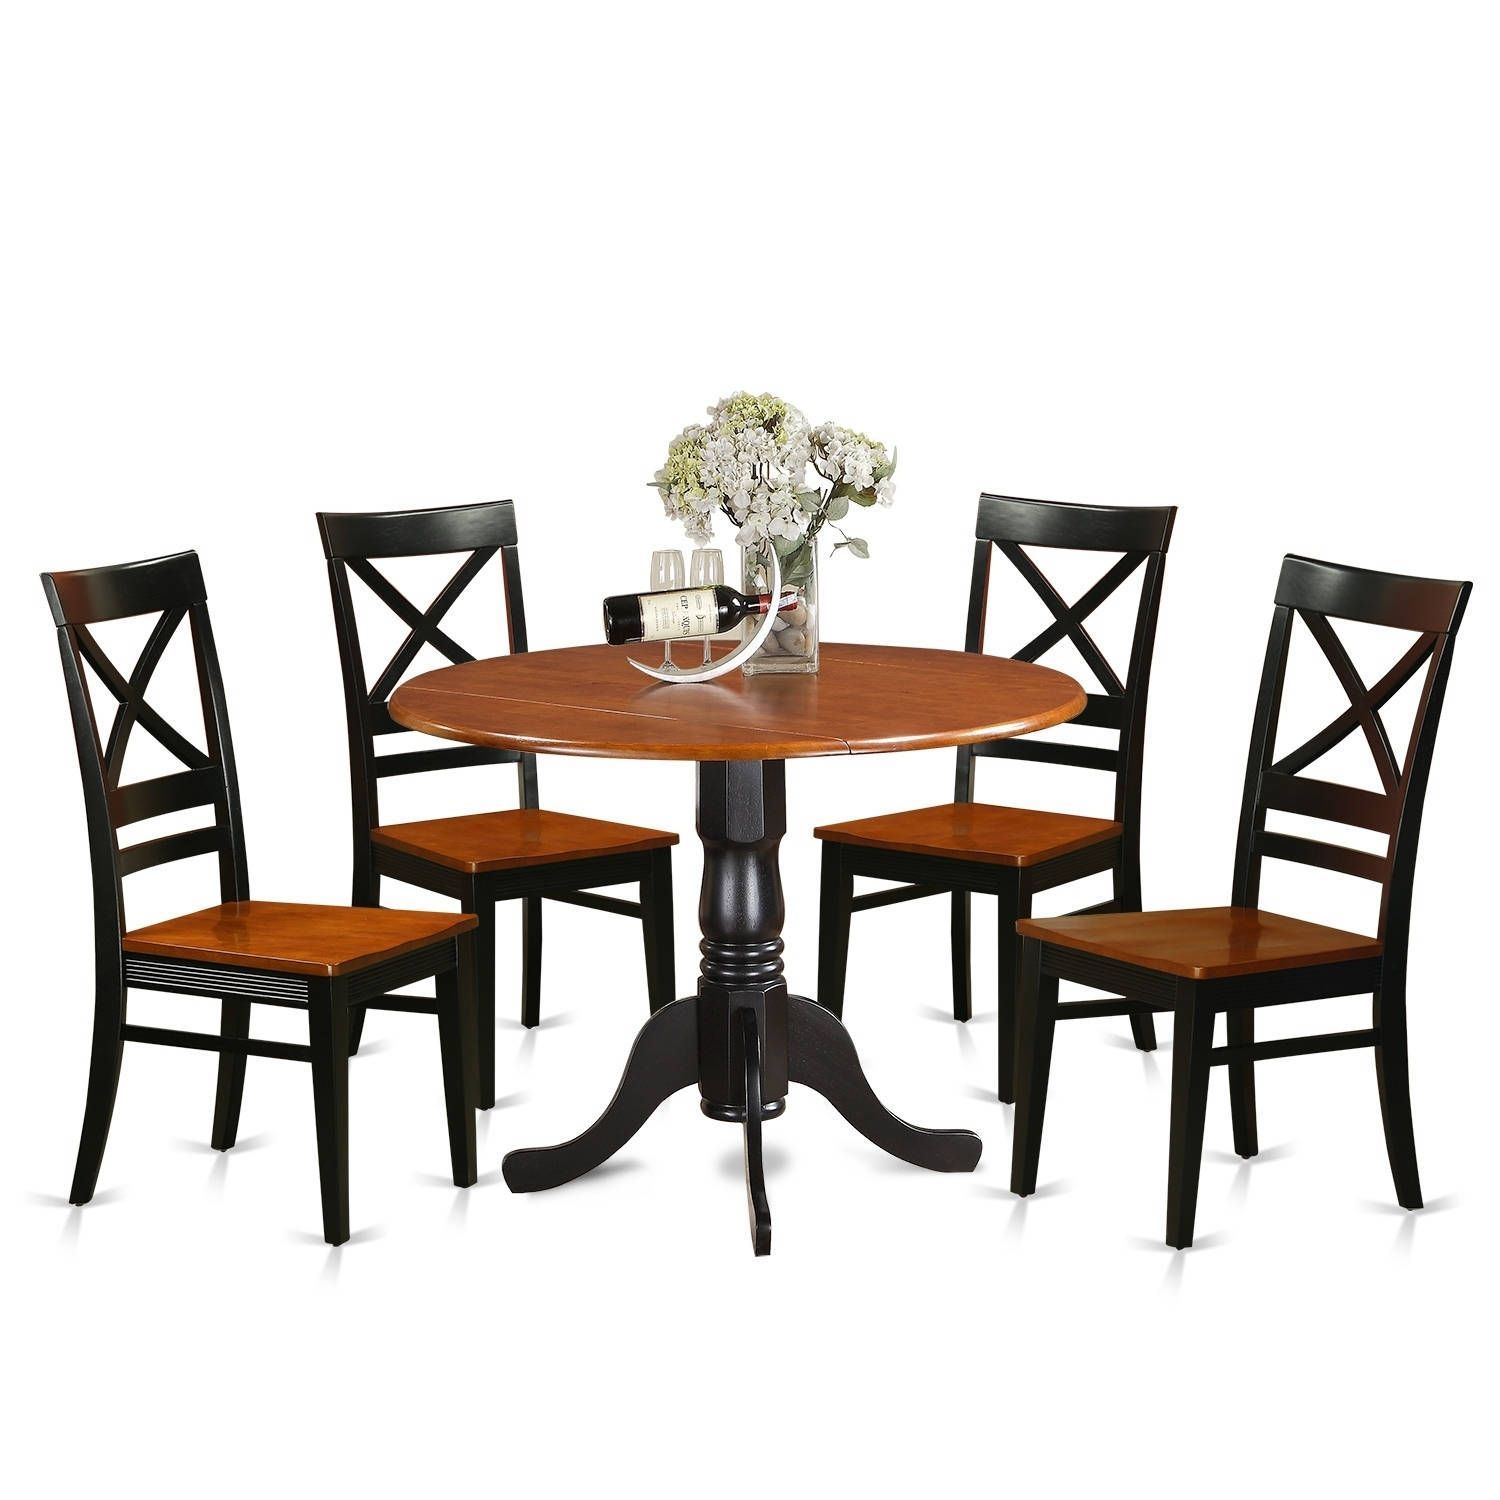 DLQU5 W 5 PC Kitchen Table set Dining Table and 4 Kitchen Chairs